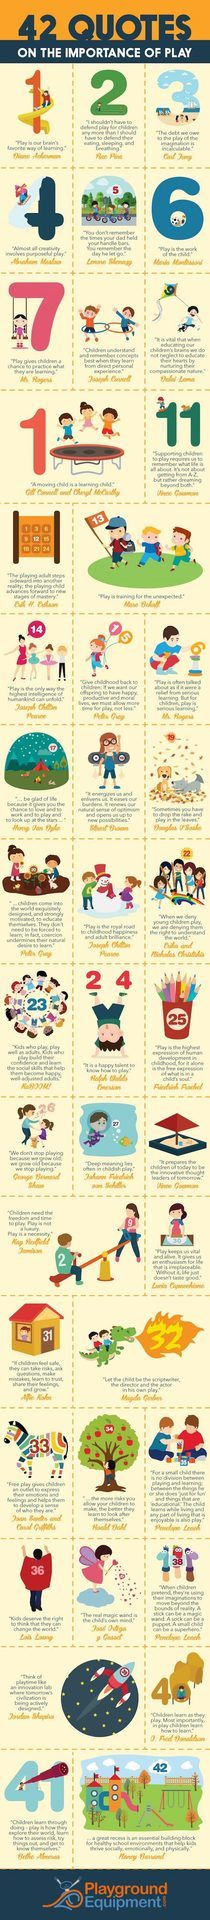 42-Quotes-on-the-Importance-of-Play-Infographic-1-897x8192.jpg